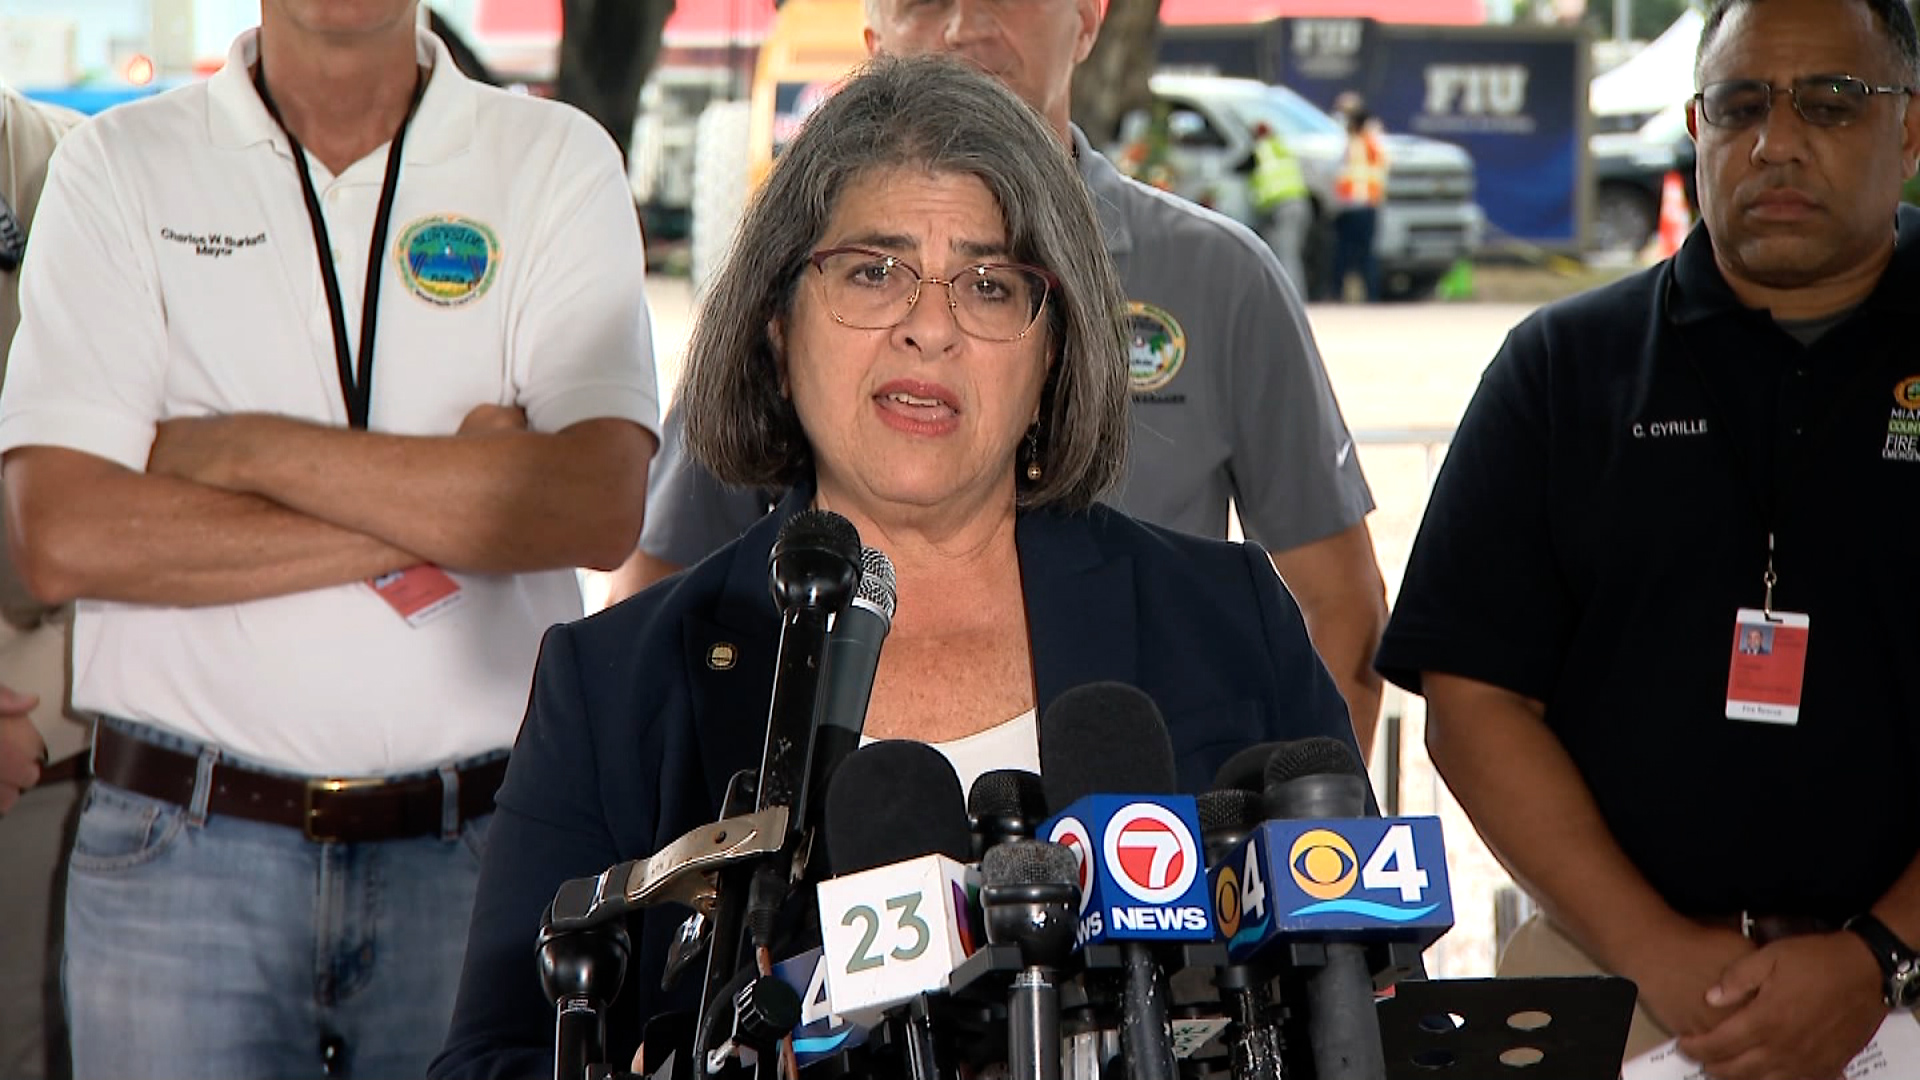 Miami-Dade County Mayor Daniella Levine Cava speaks during a press conference in Surfside, Florida, on July 2.